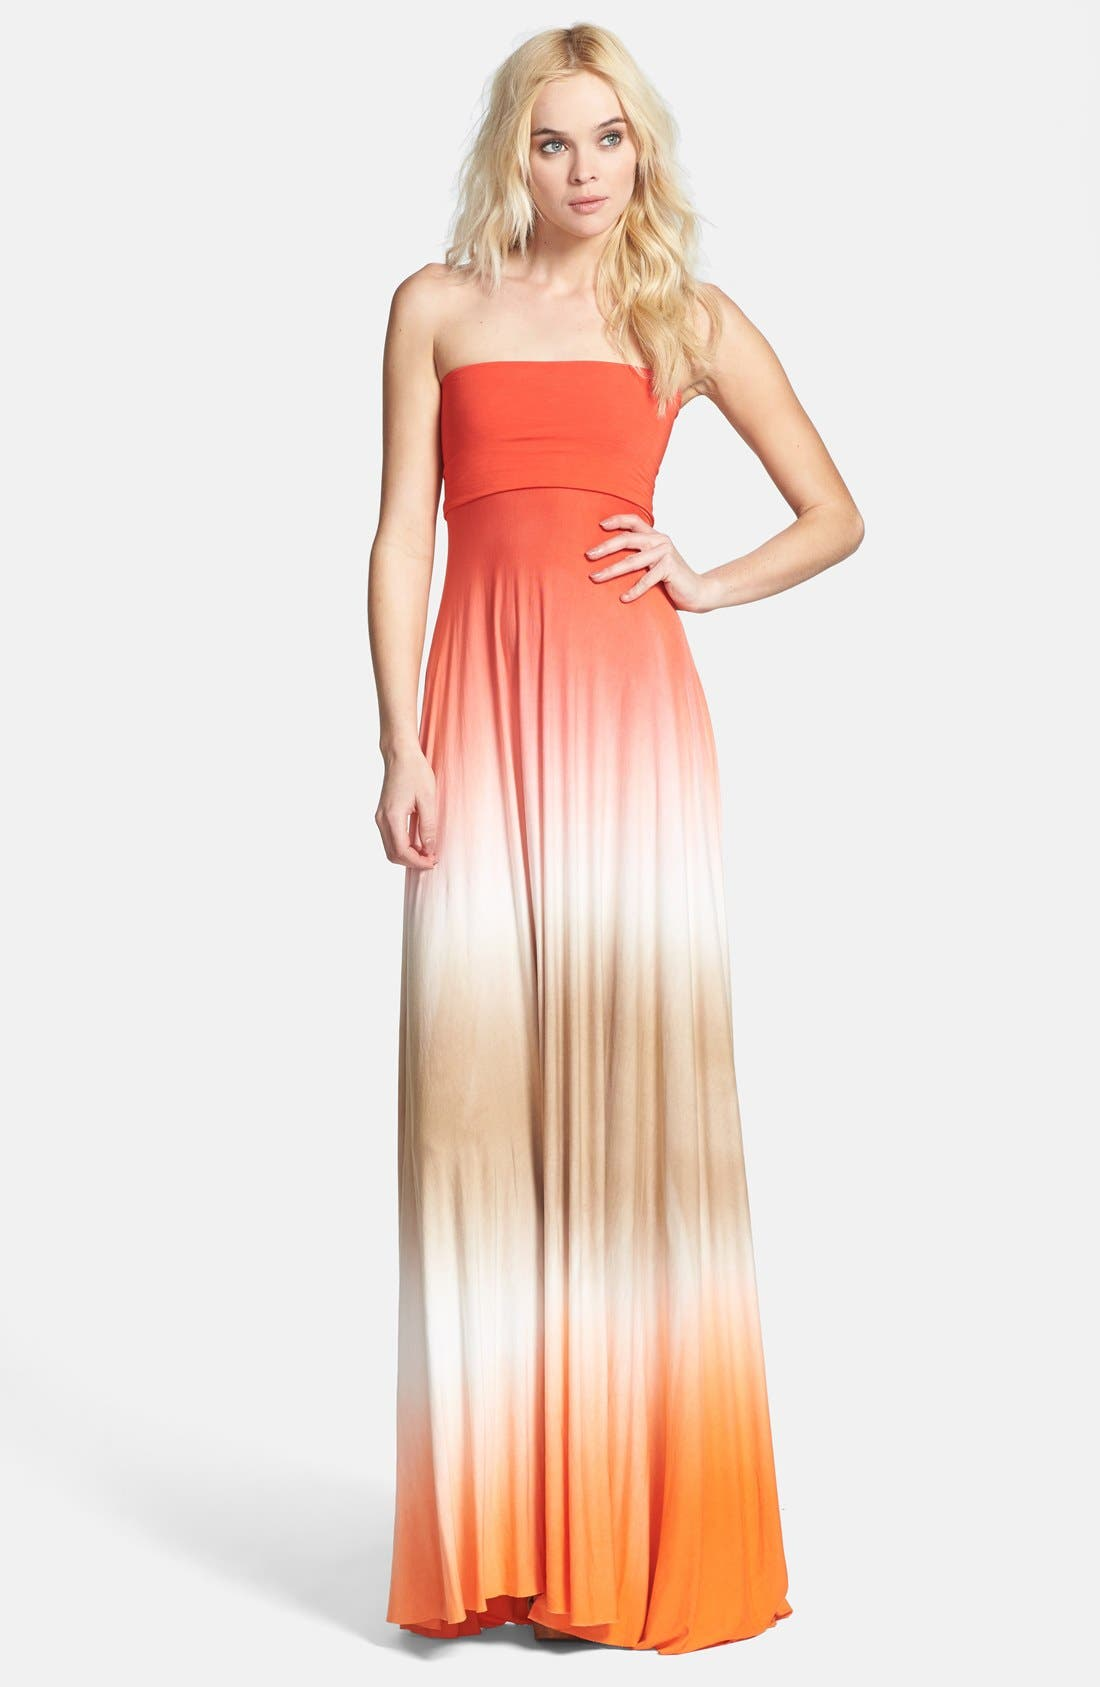 Alternate Image 1 Selected - Young, Fabulous & Broke 'Bangal' Convertible Maxi Dress